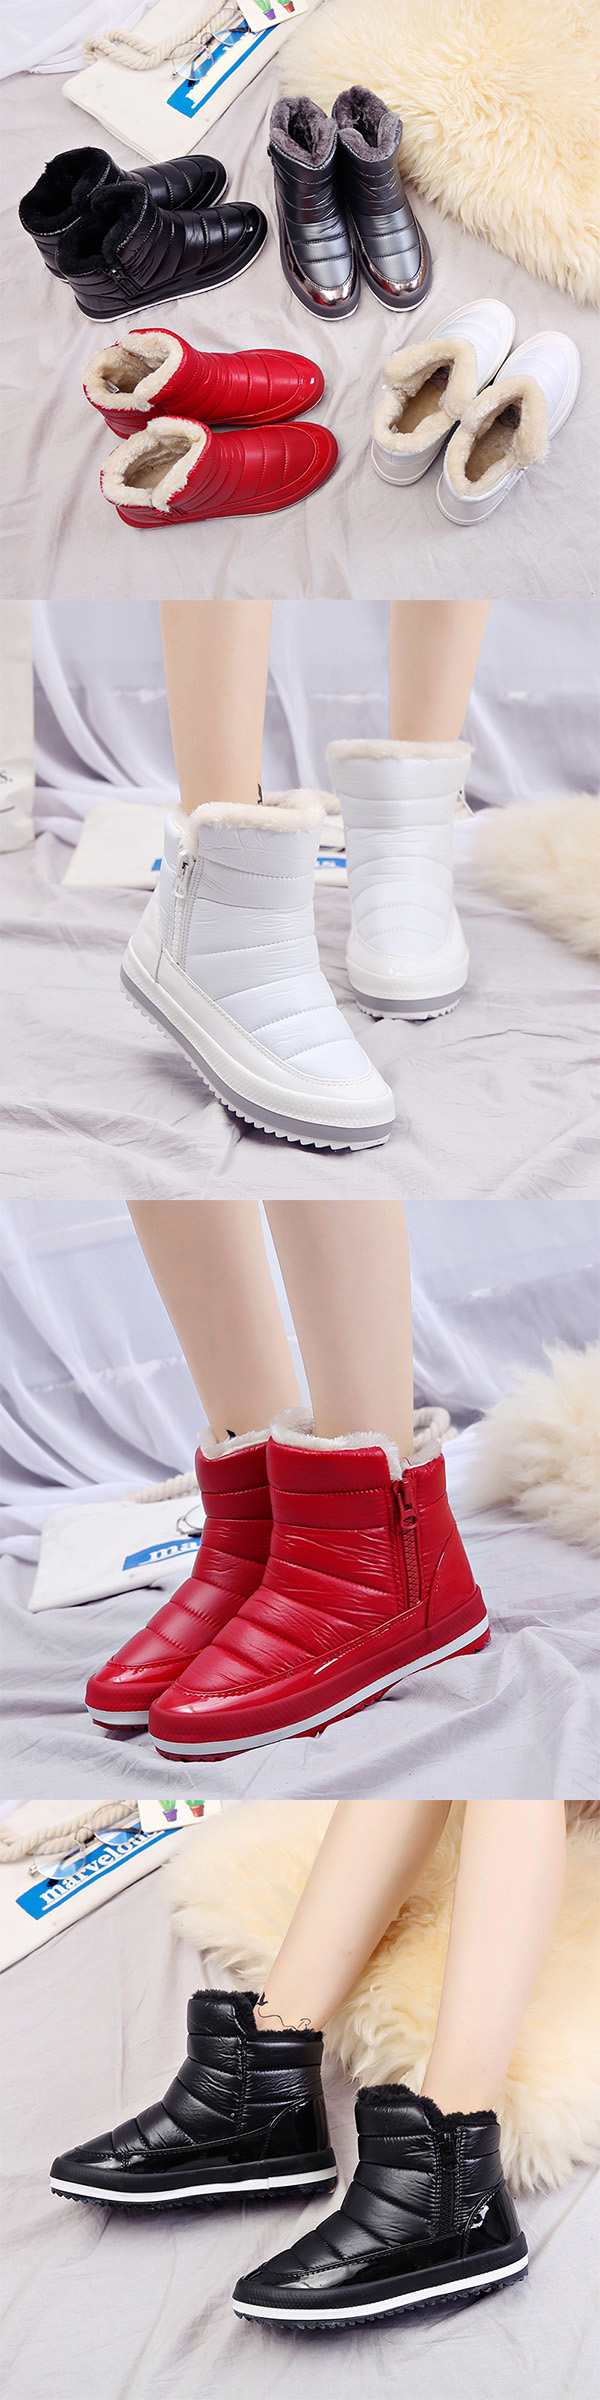 123bfdf2ddea US 24.52 M.GENERAL Waterproof Warm Pure Colour Fur Lining Short Snow boots  For Women